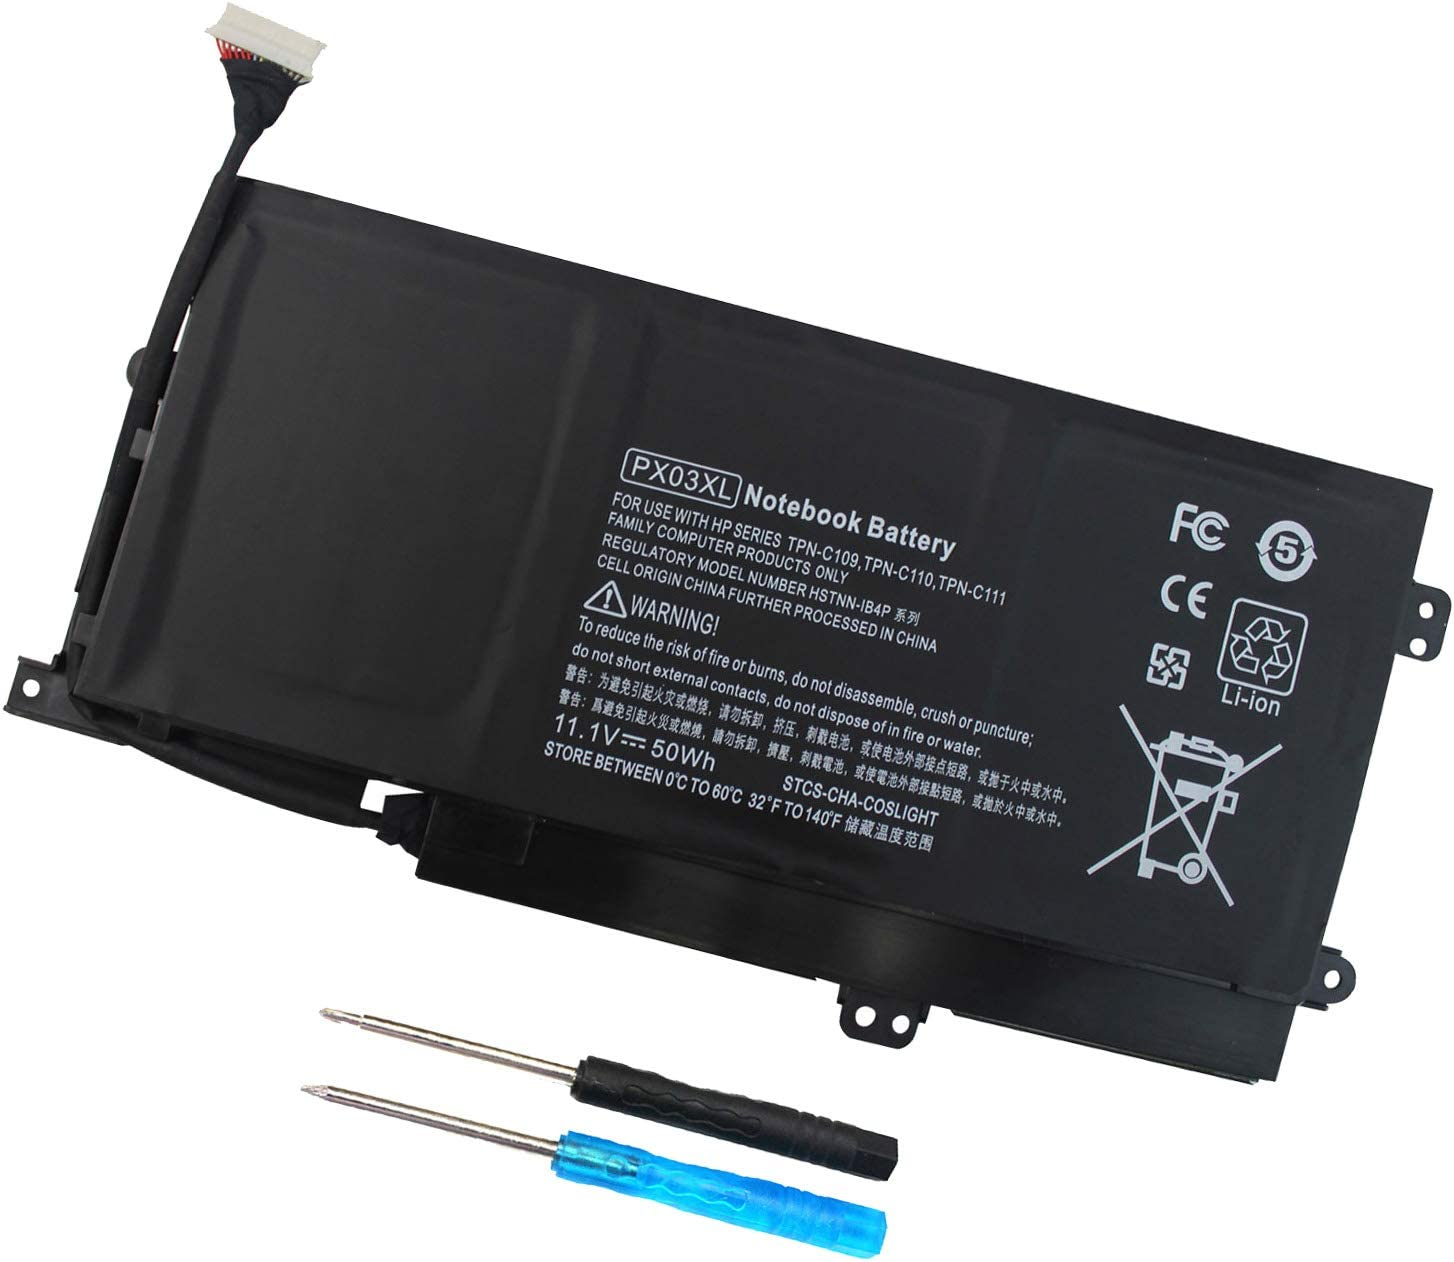 PX03XL Notebook Battery for HP Envy 14 Touchsmart M6 M6-K M6-K125DX M6-K015DX M6-K025DX M6-K010DX M6-K022DX 14- K112NR 715050-001 714762-1C1 TPN-C109 TPN-C110 TPN-C111-12 Month Warranty